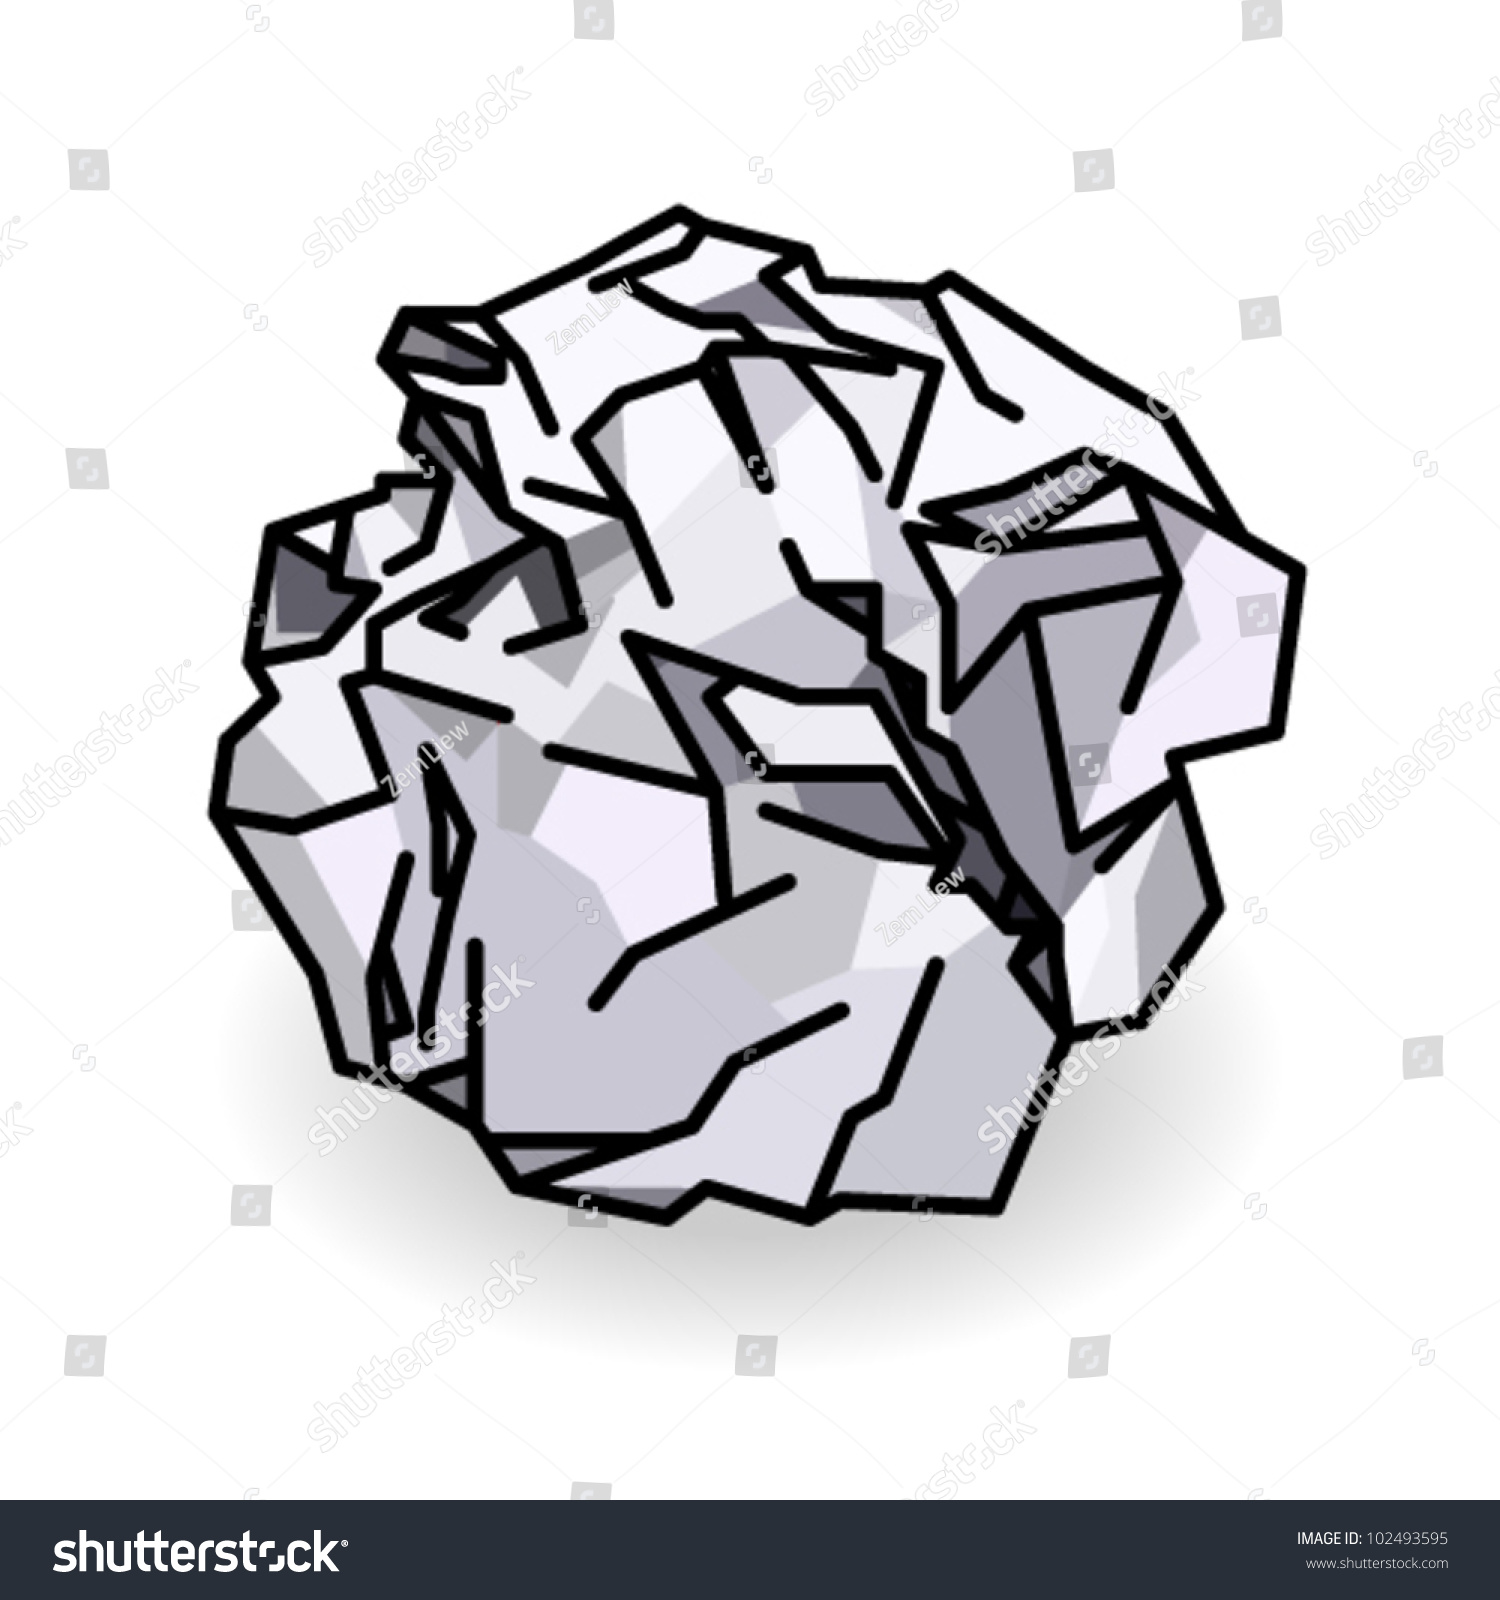 ball crumpled paper stock vector (royalty free) 102493595 - shutterstock